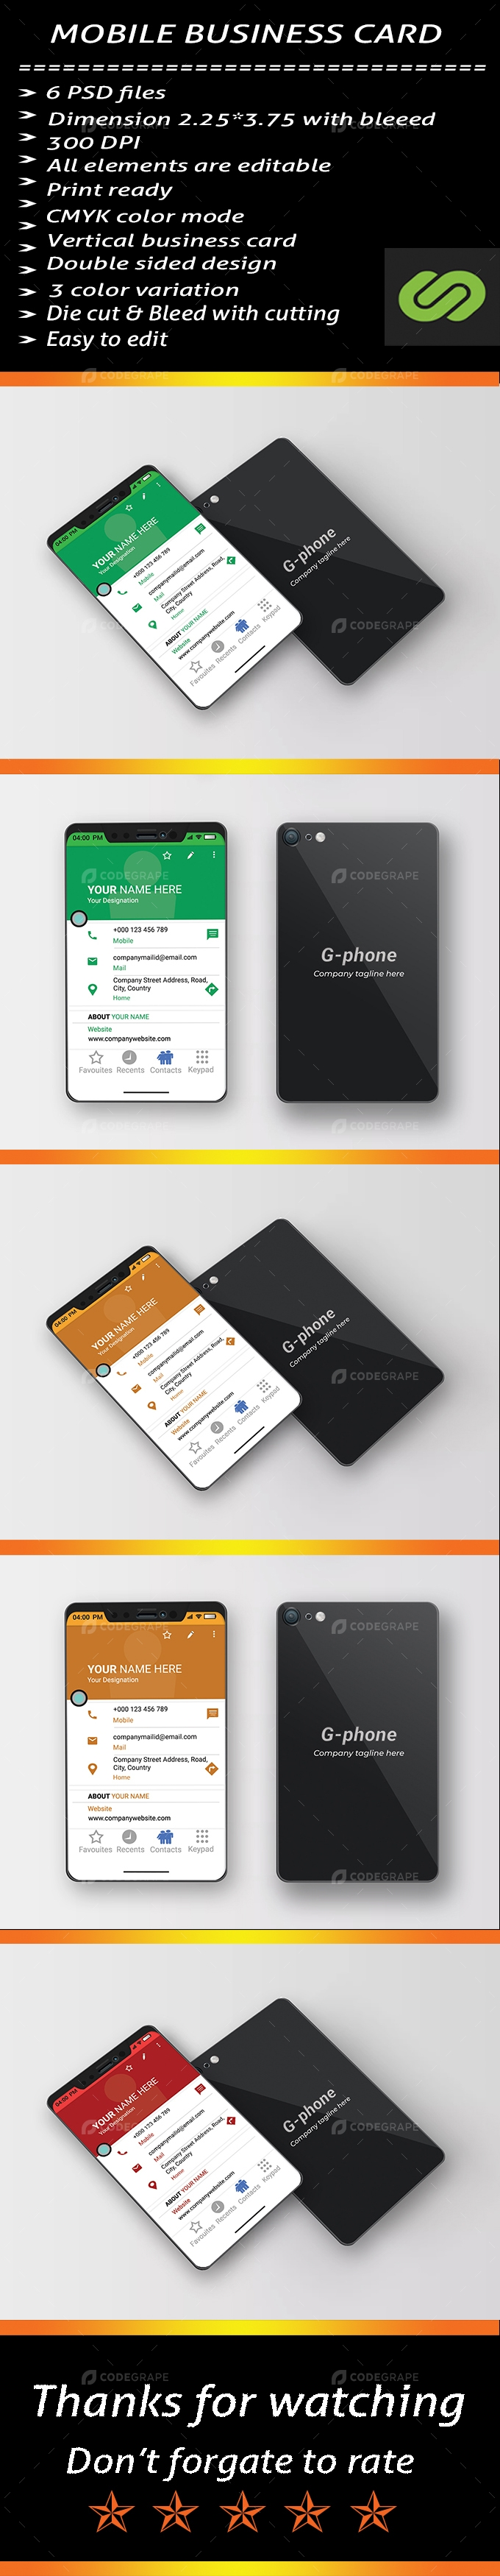 Mobile Phone Business Card Template